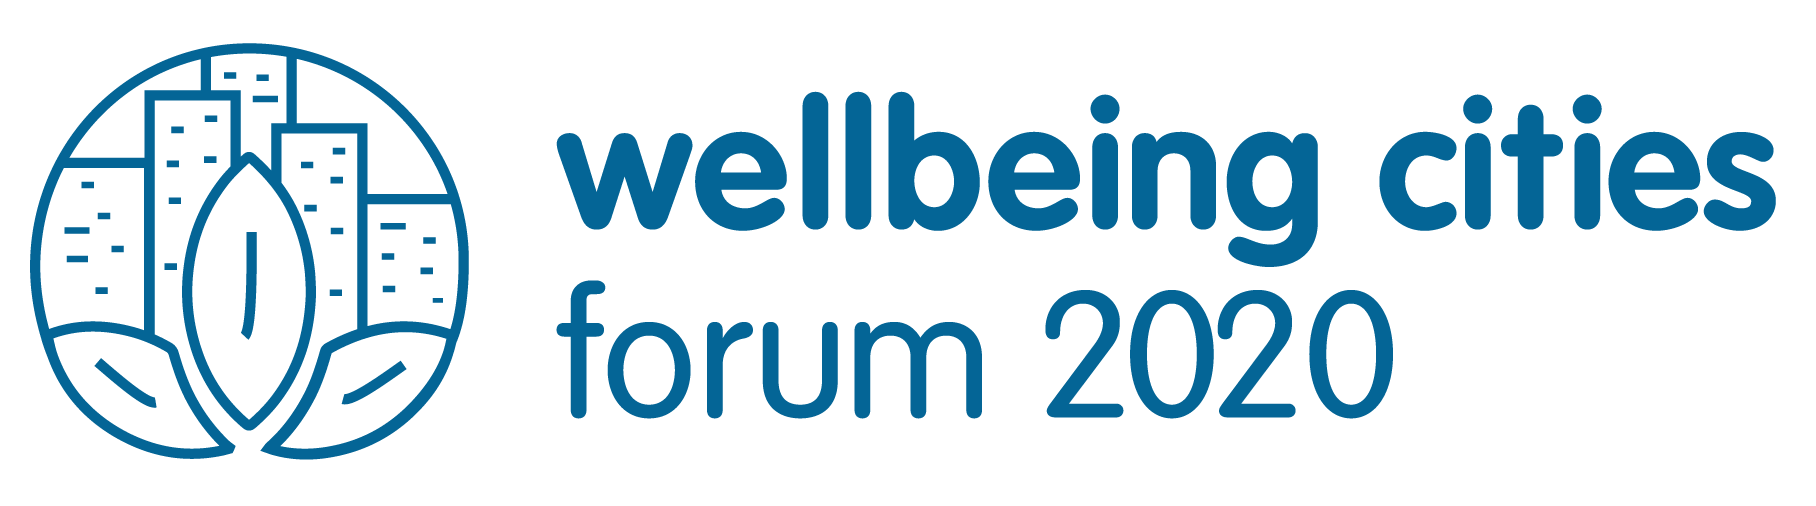 Wellbeing-Cities-Forum-2020.png